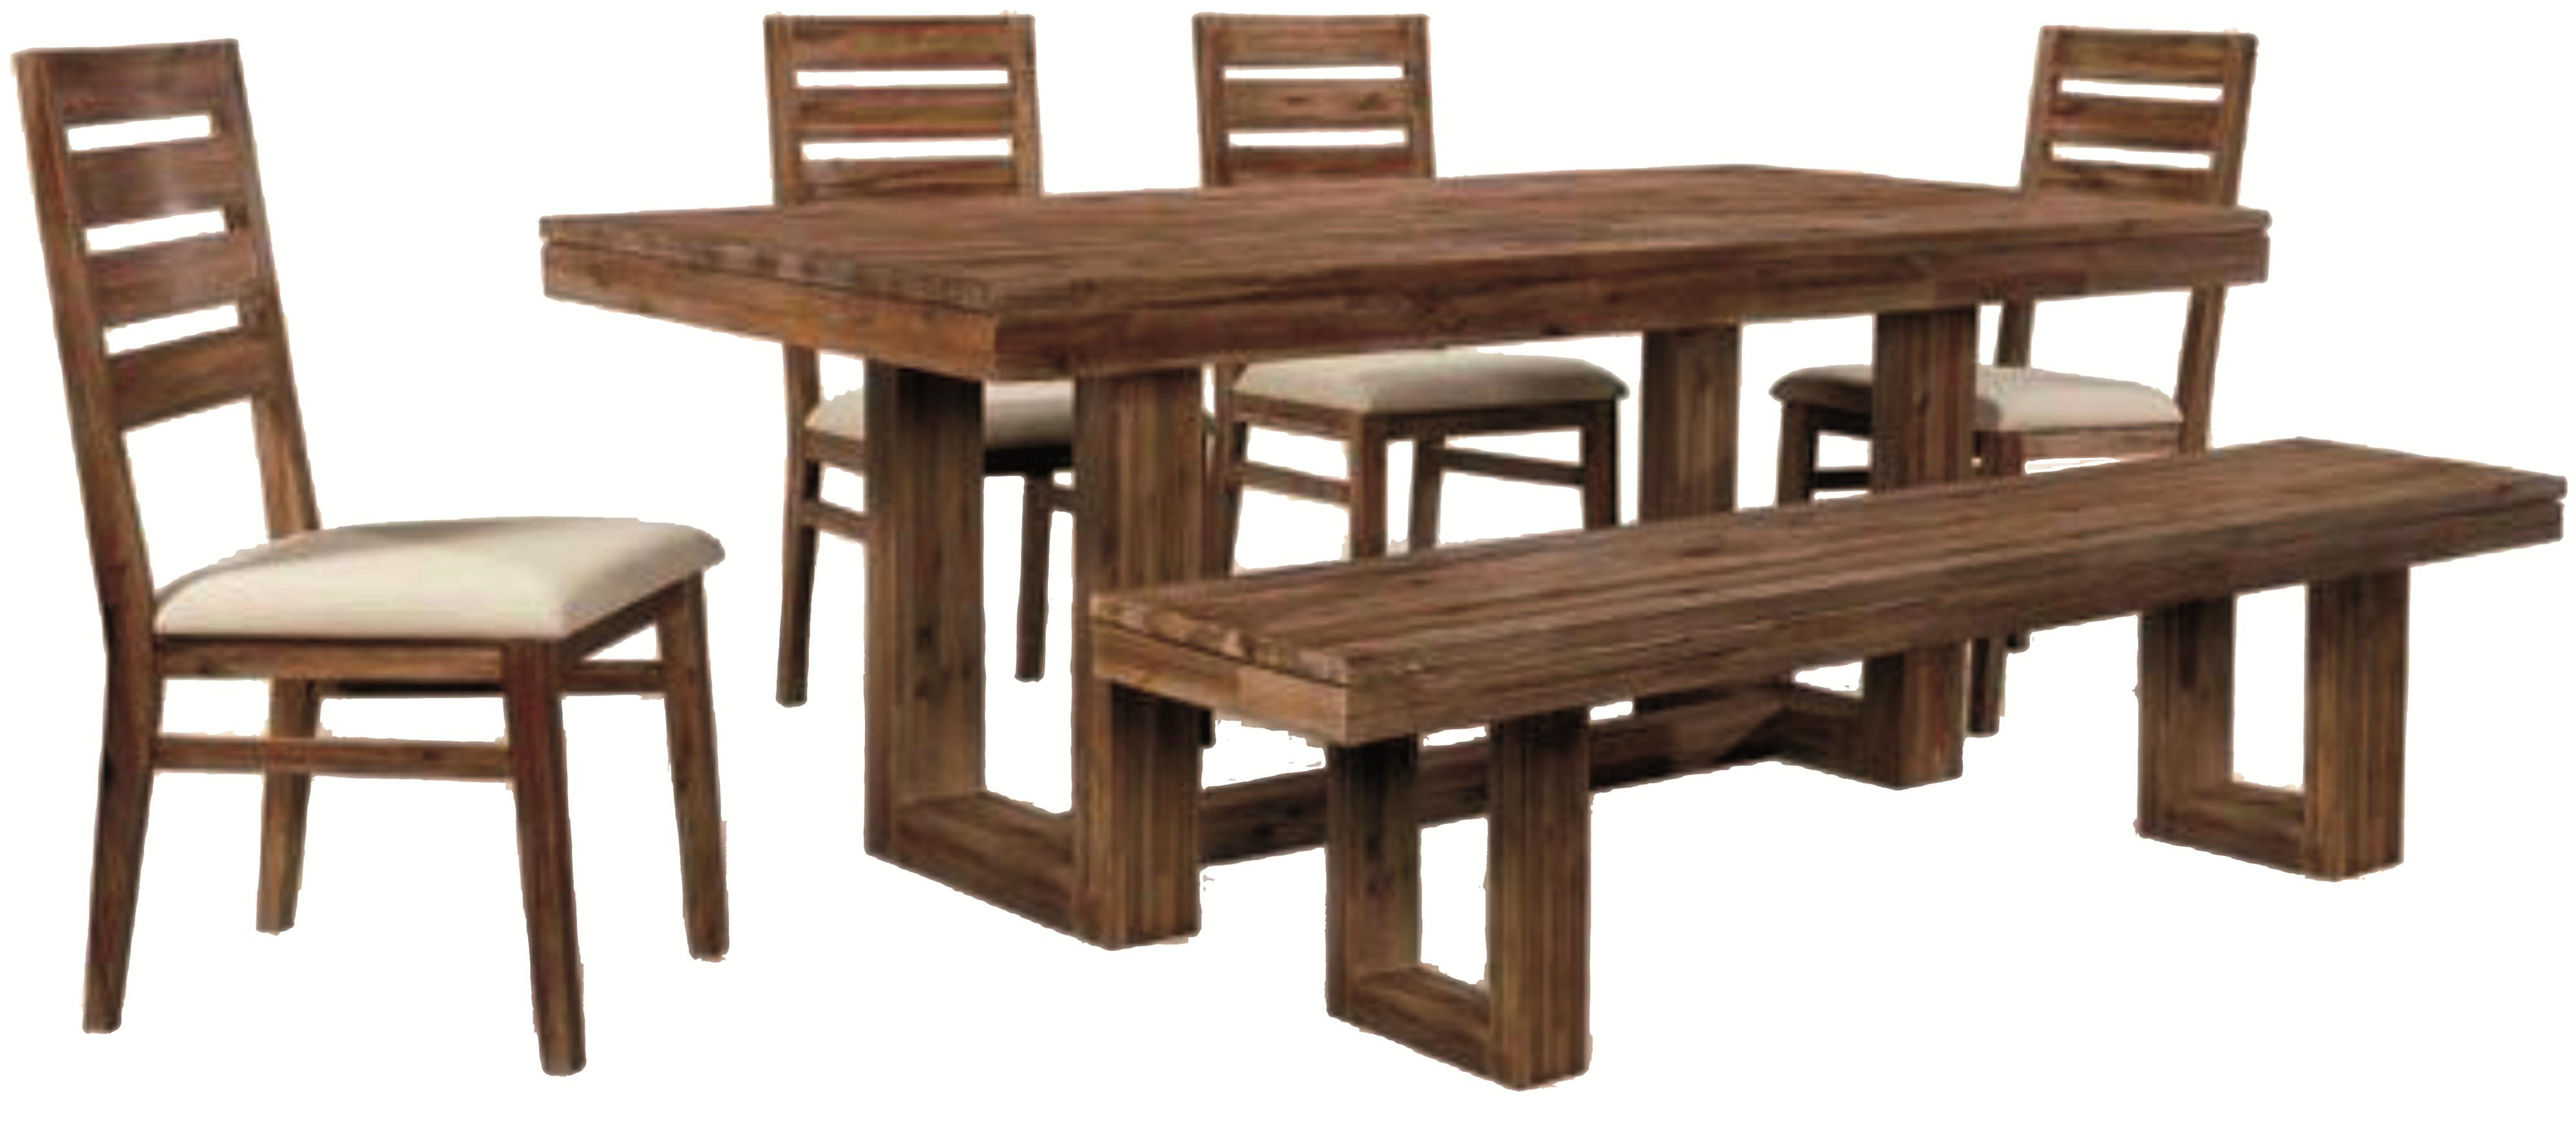 Six Piece Modern Rustic Rectangular Trestle Table With Ladderback Side  Chairs U0026 Dining Bench · 6 Piece Set